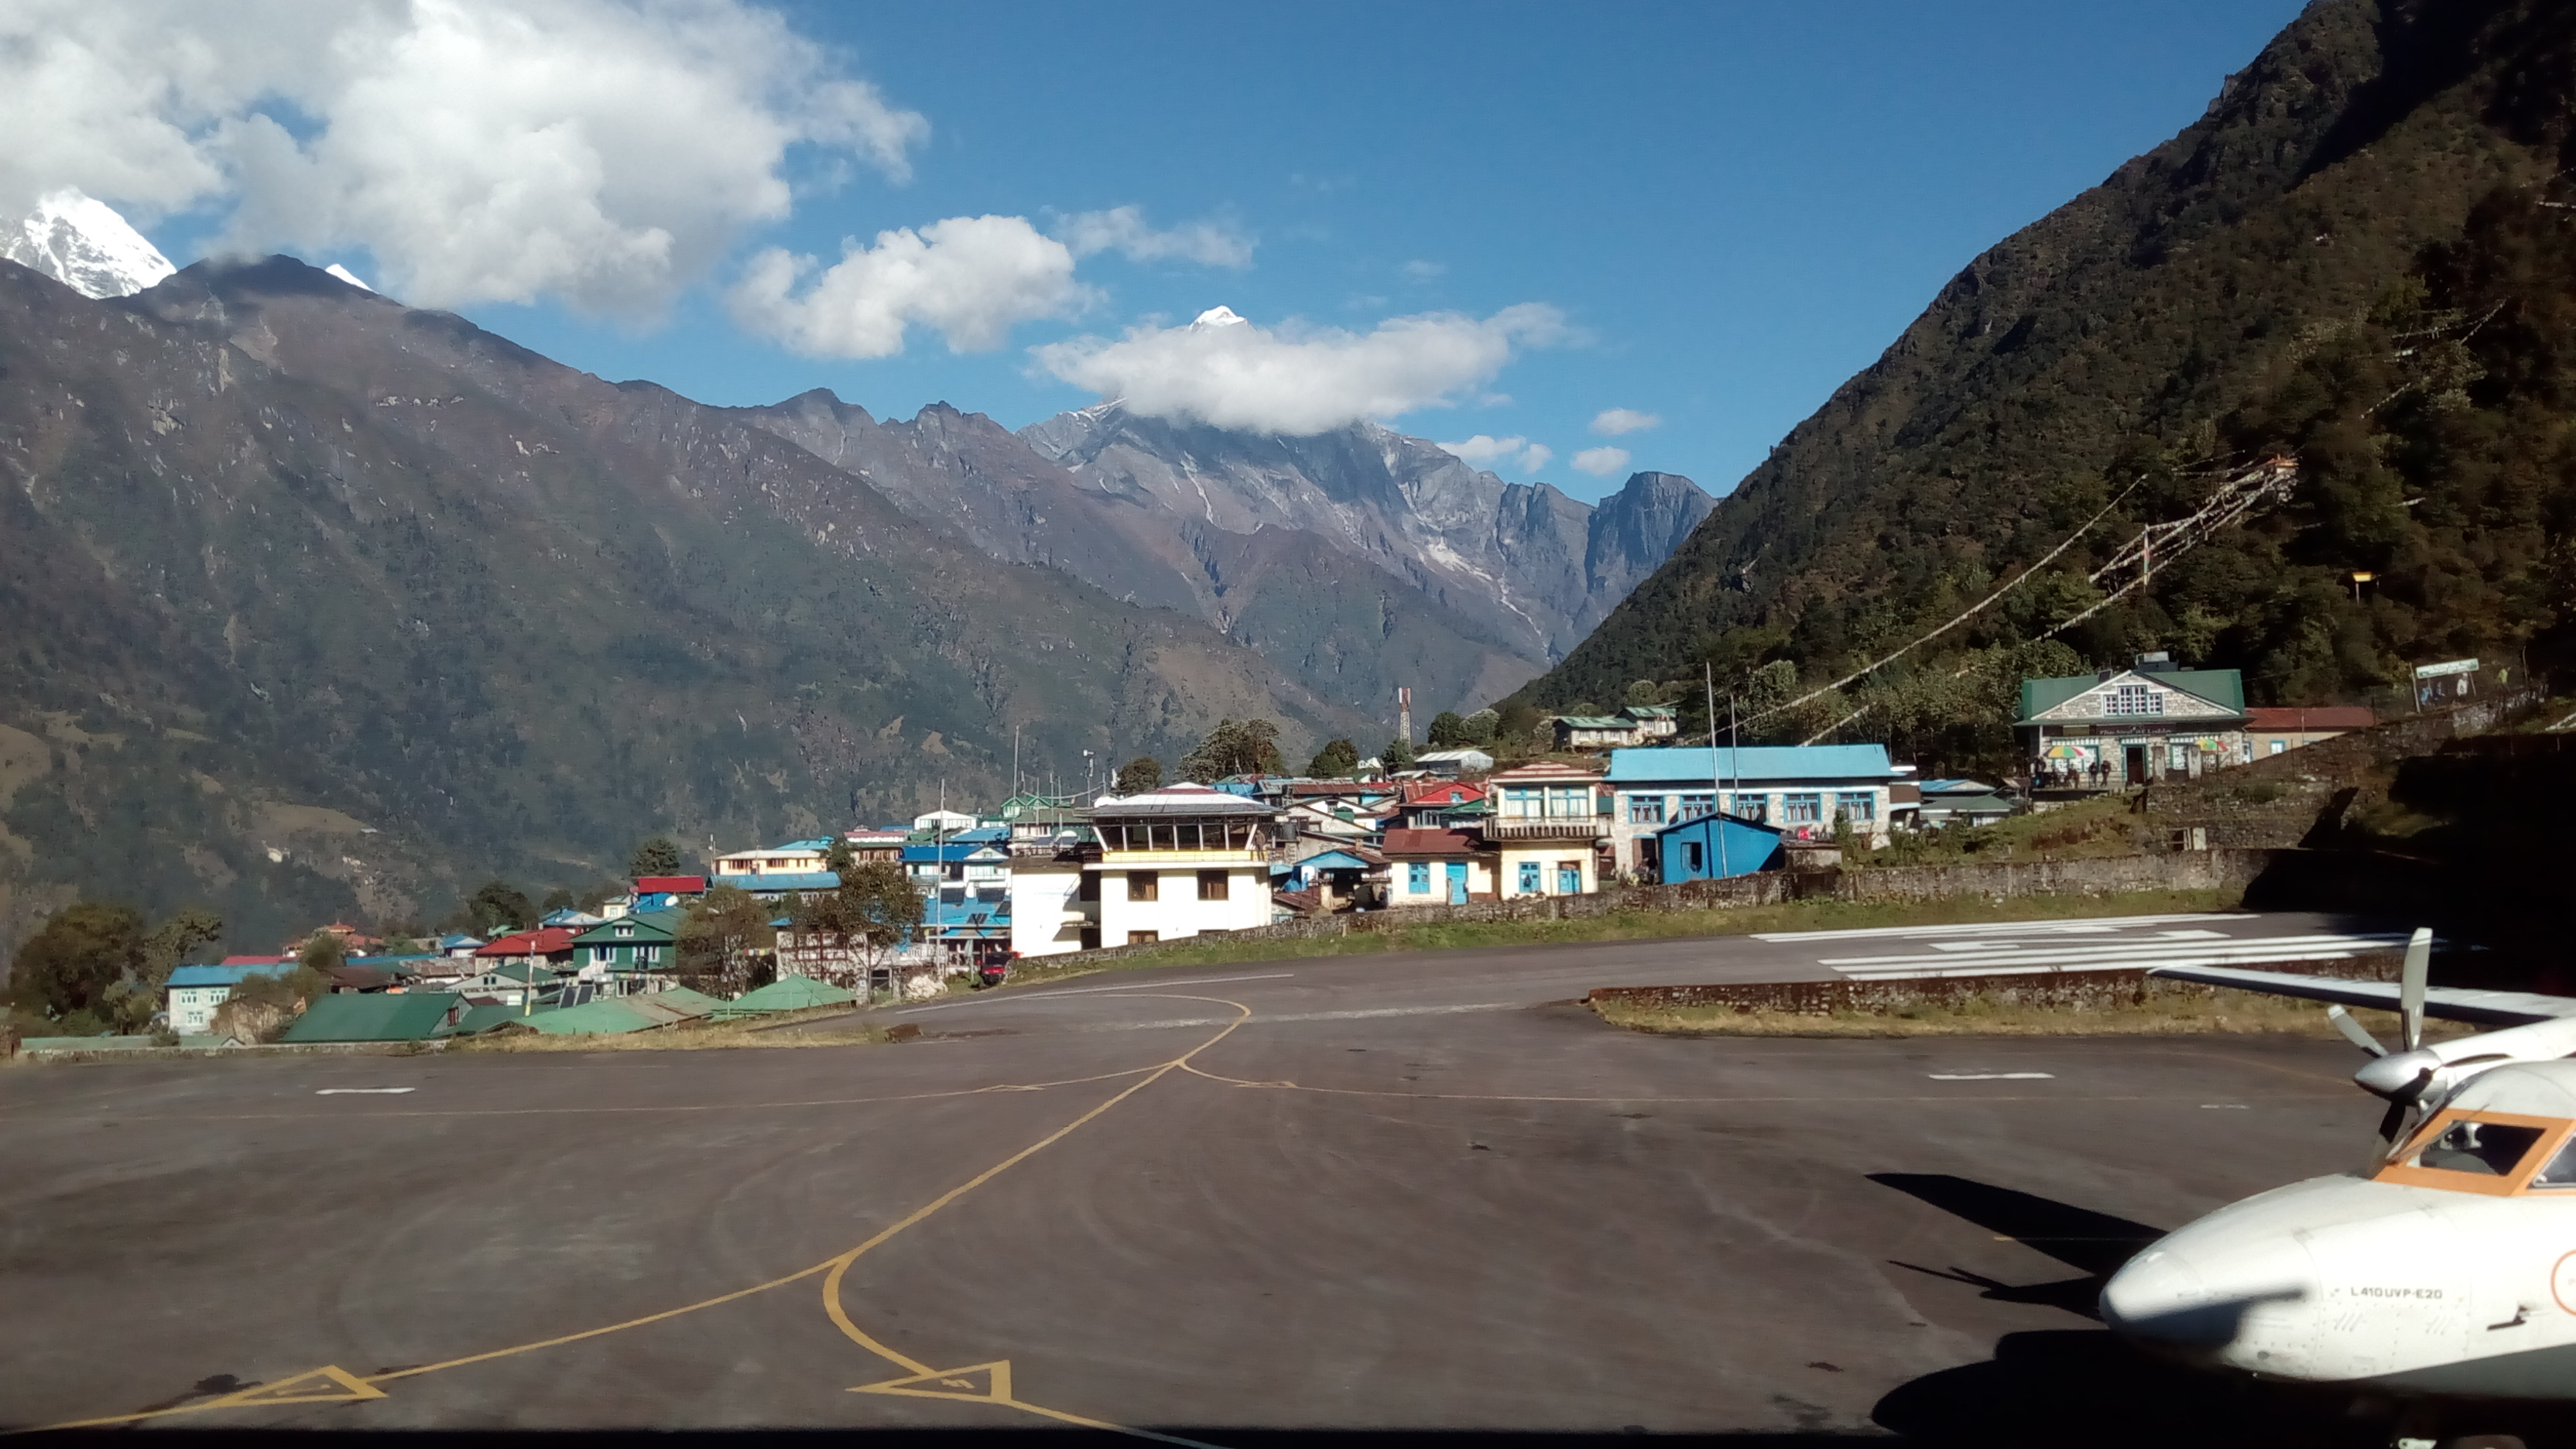 Lukla Airport at Everest Region